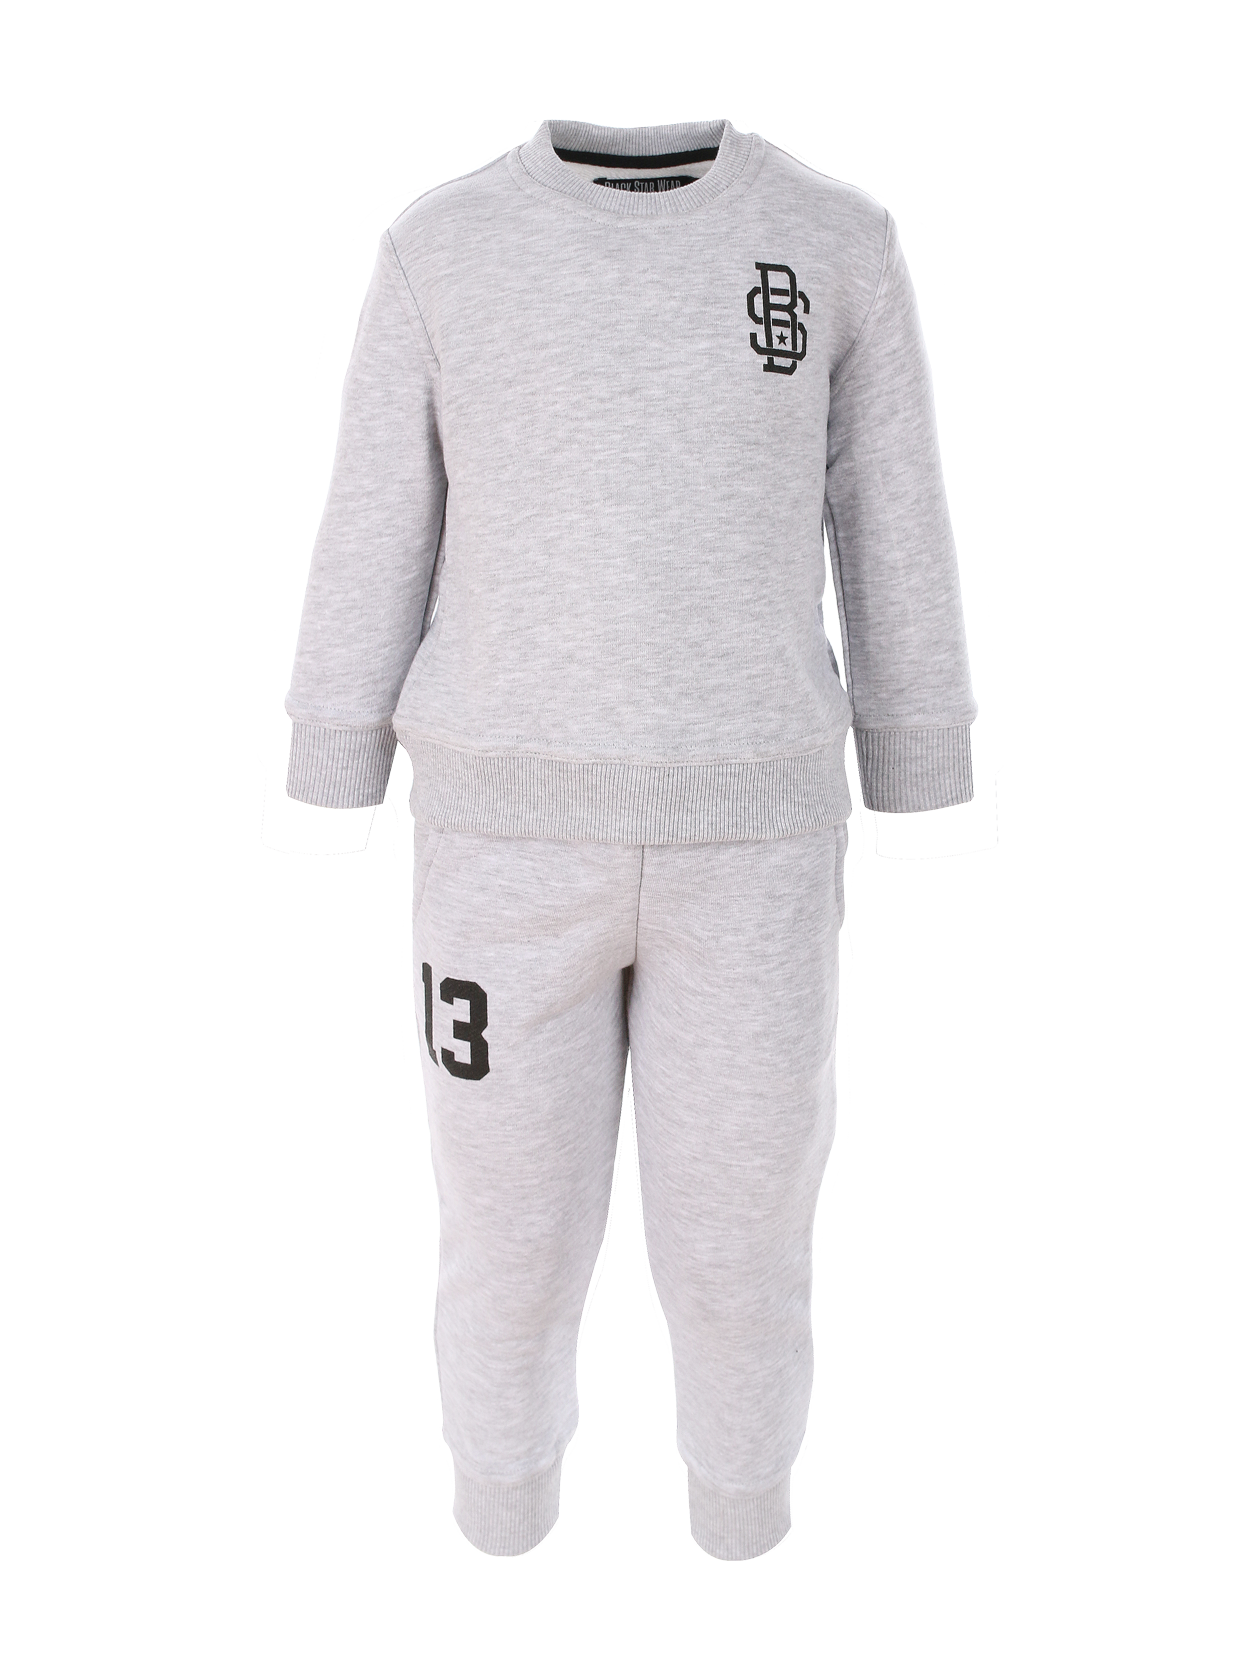 Kids sport suit BS13Kids sweatpants and sweatshirt set by Black Star Wear. Straight fit, natural cotton. Sweatshirt with Black Star monogram on the chest and 13 print on the back. Joggers with side pockets and 13 print on the right side.<br><br>size: 1-2 years<br>color: Grey<br>gender: unisex